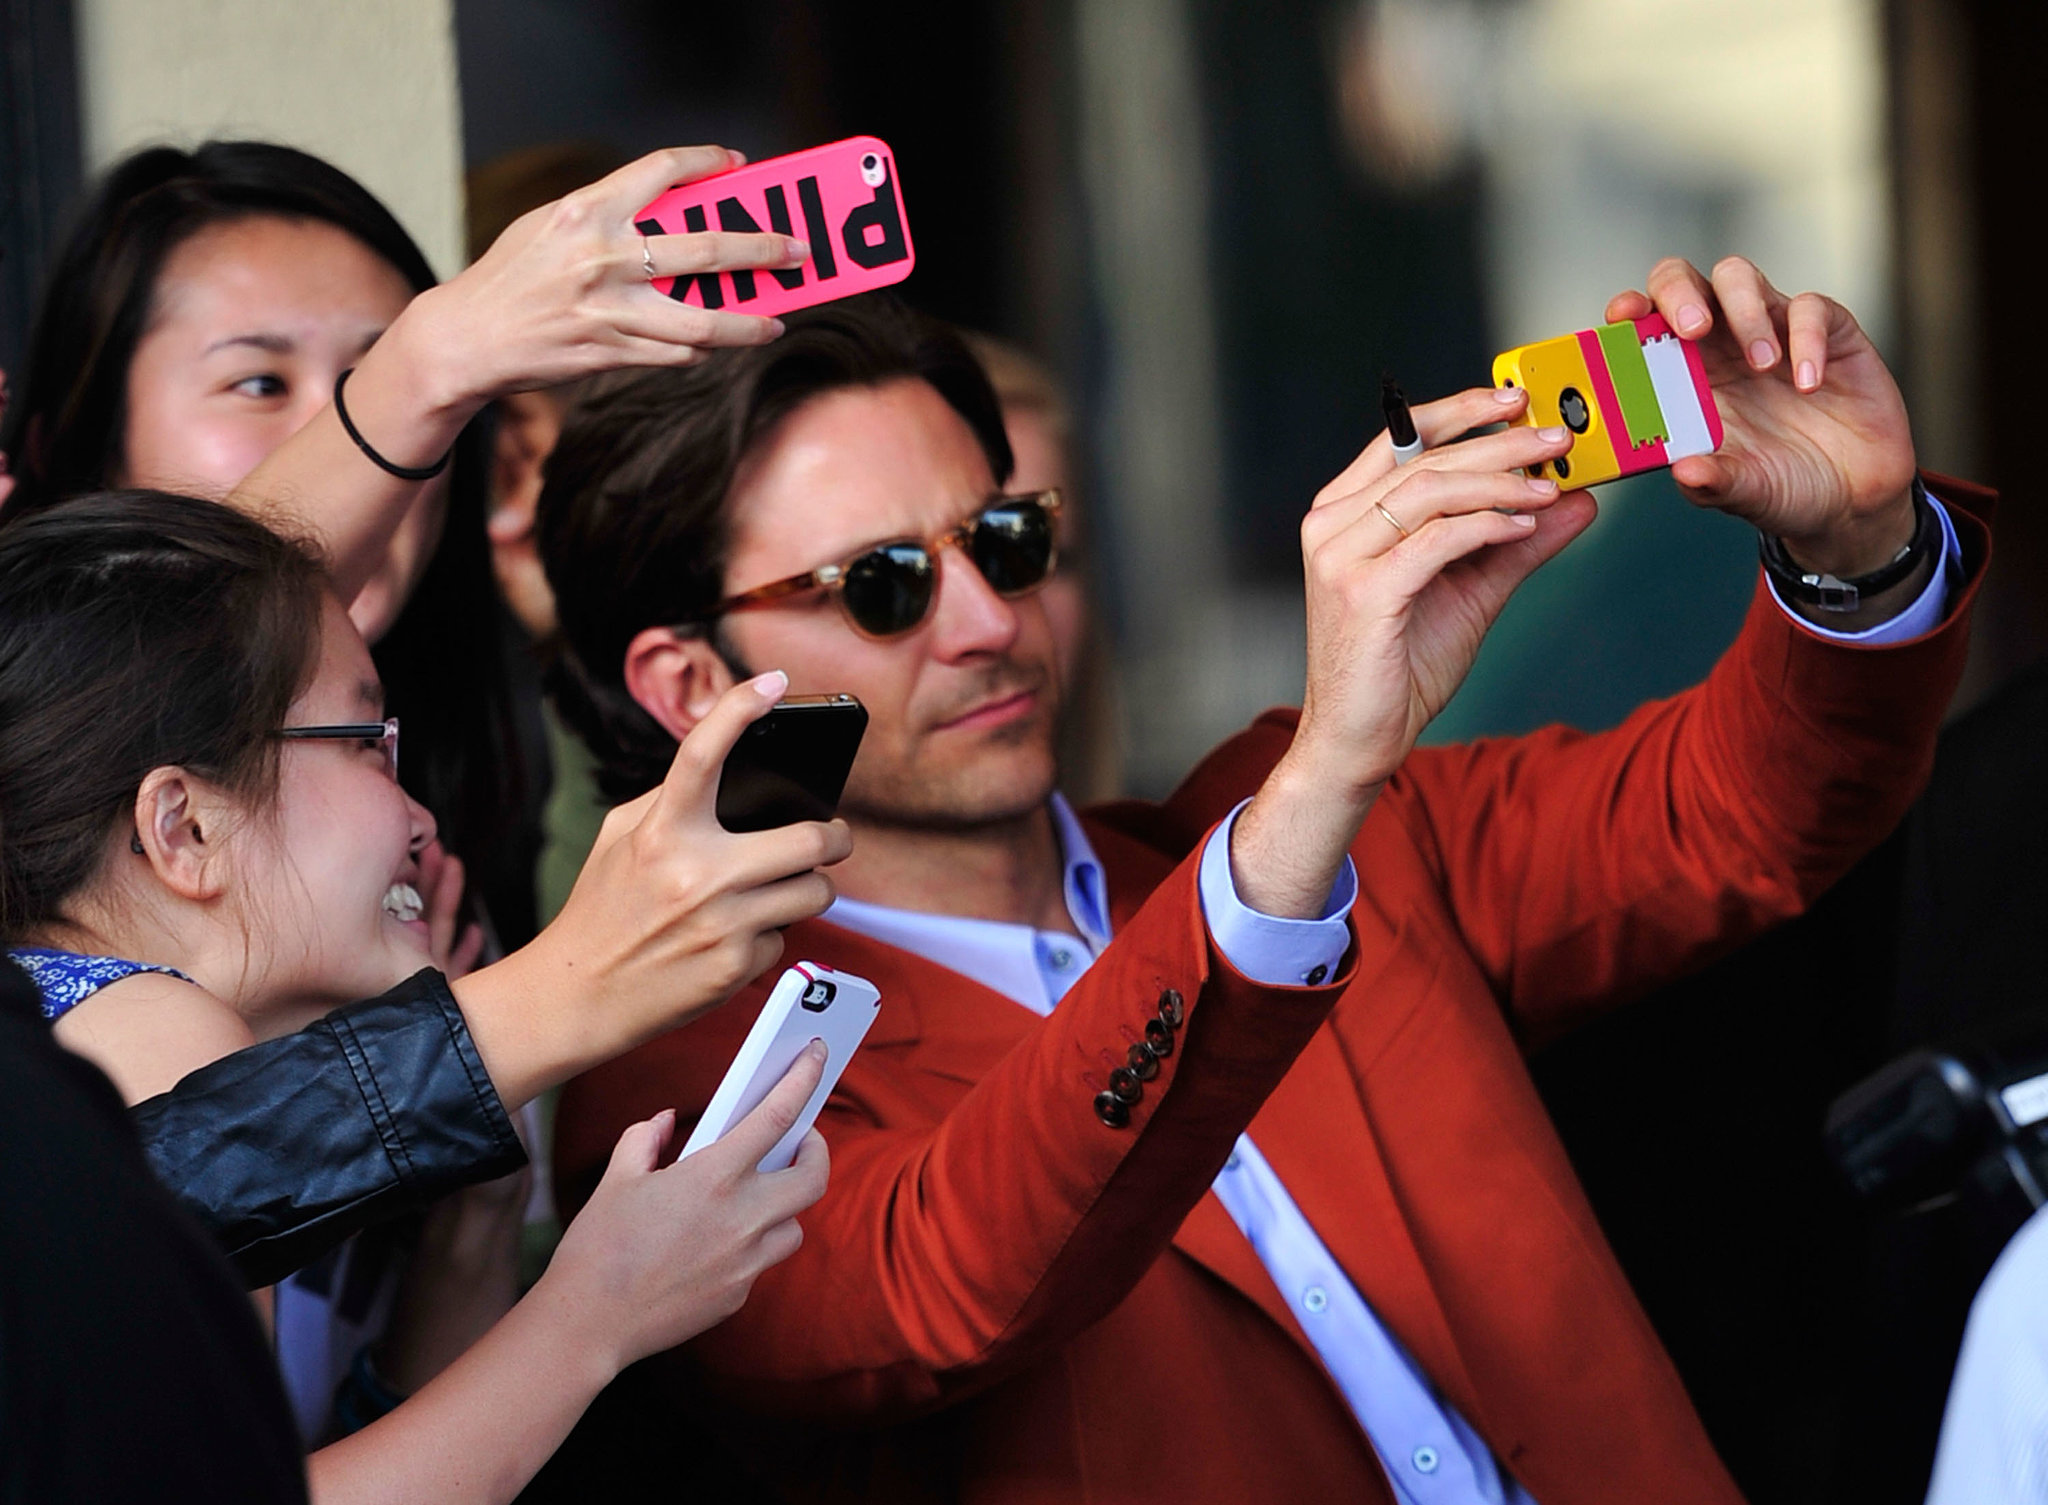 Bradley Cooper was more than comfortable surrounded by camera phones at the LA premiere of The Han